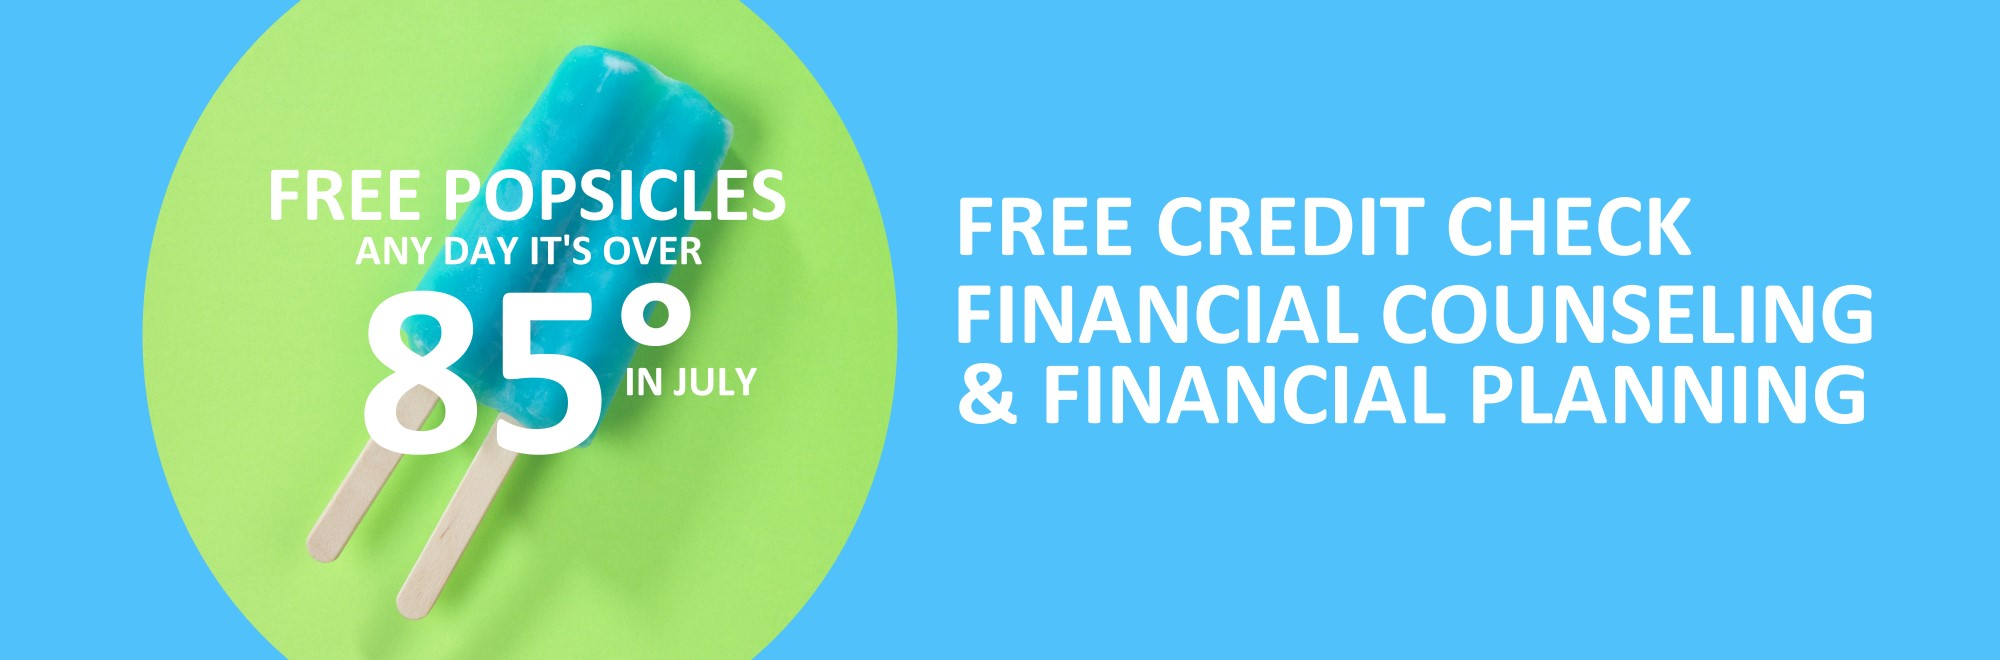 Free Popsicles and Financial planning advice banner image